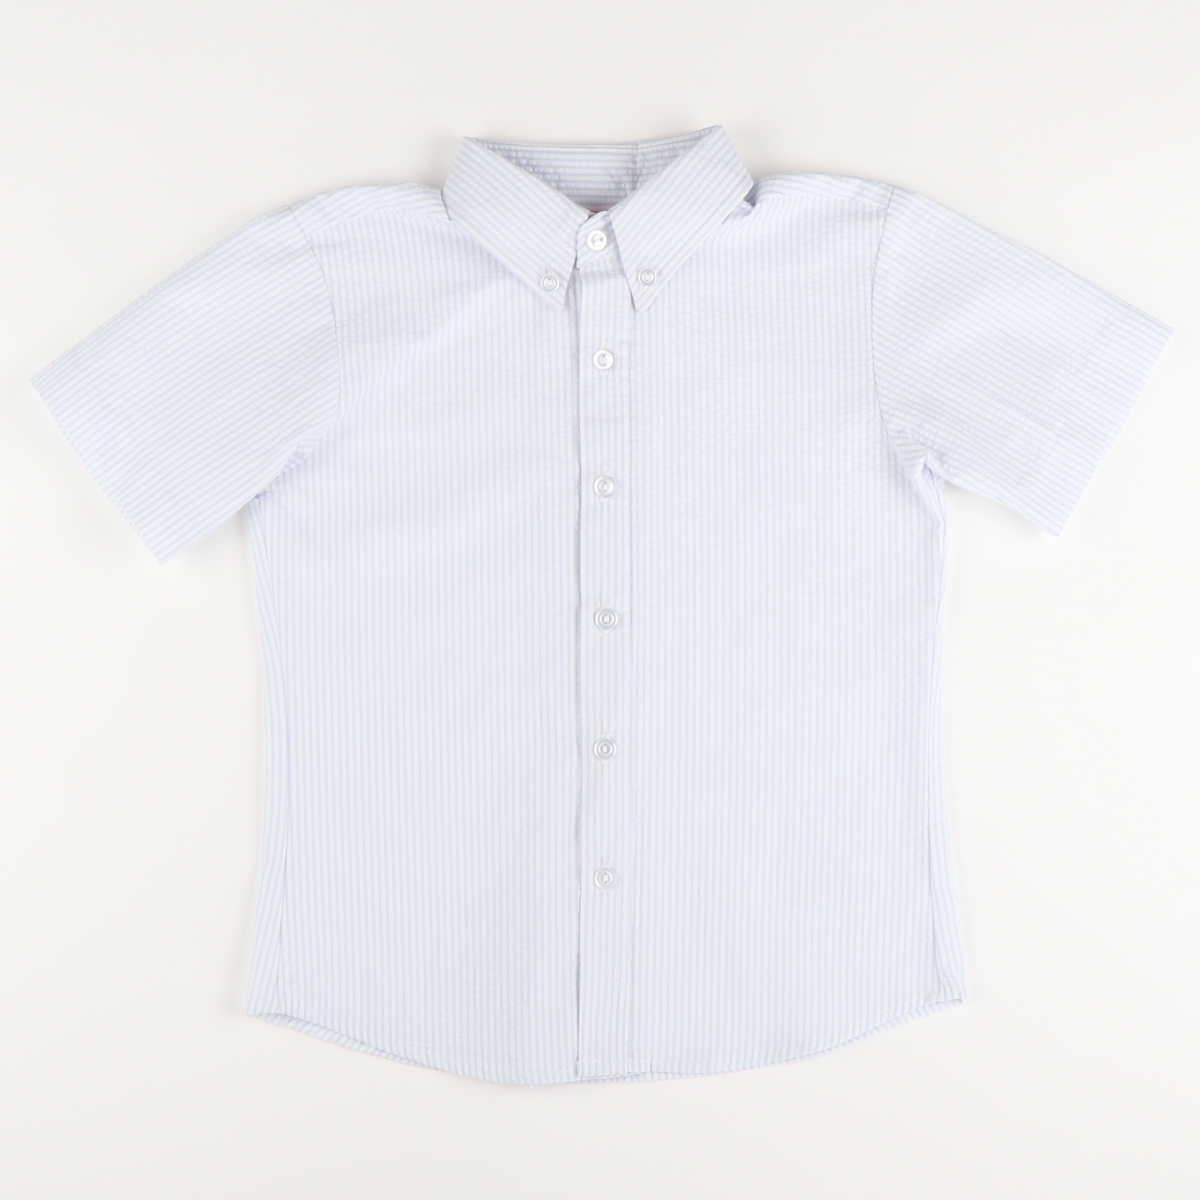 Signature S/S Button Down - Light Blue Stripe Seersucker